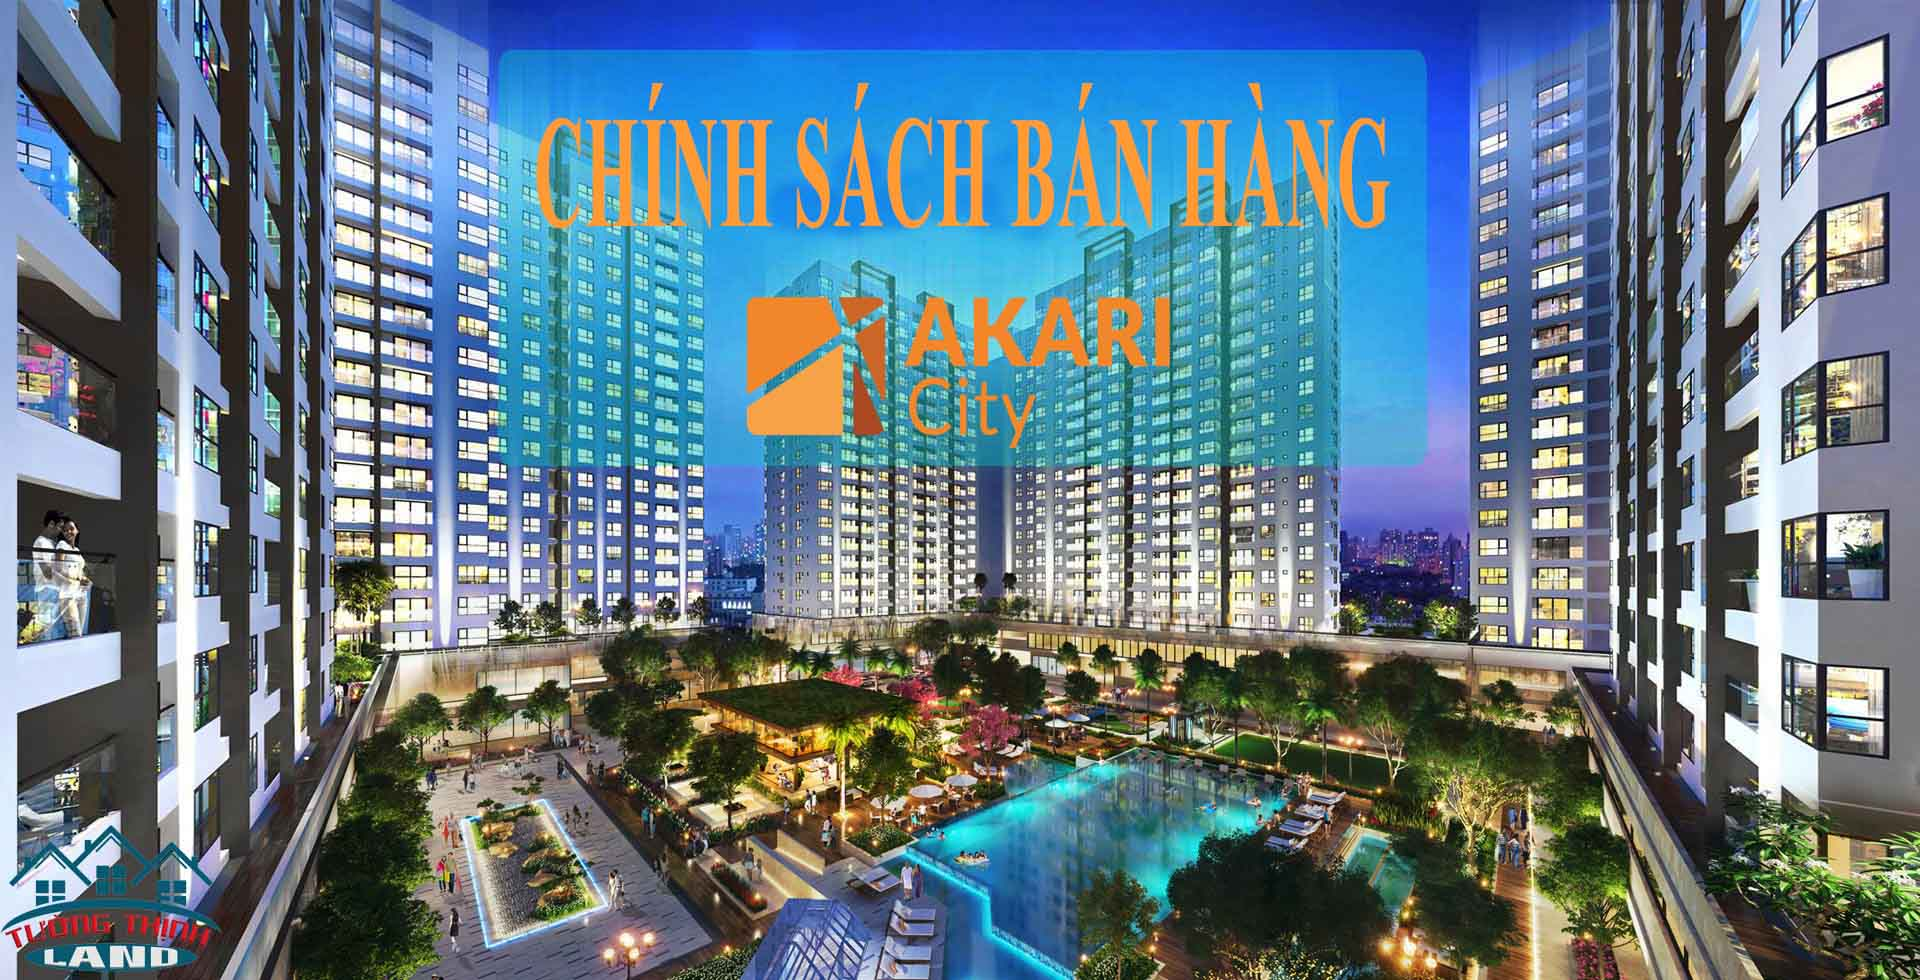 chinh-sach-ban-hang-du-an-akari-city